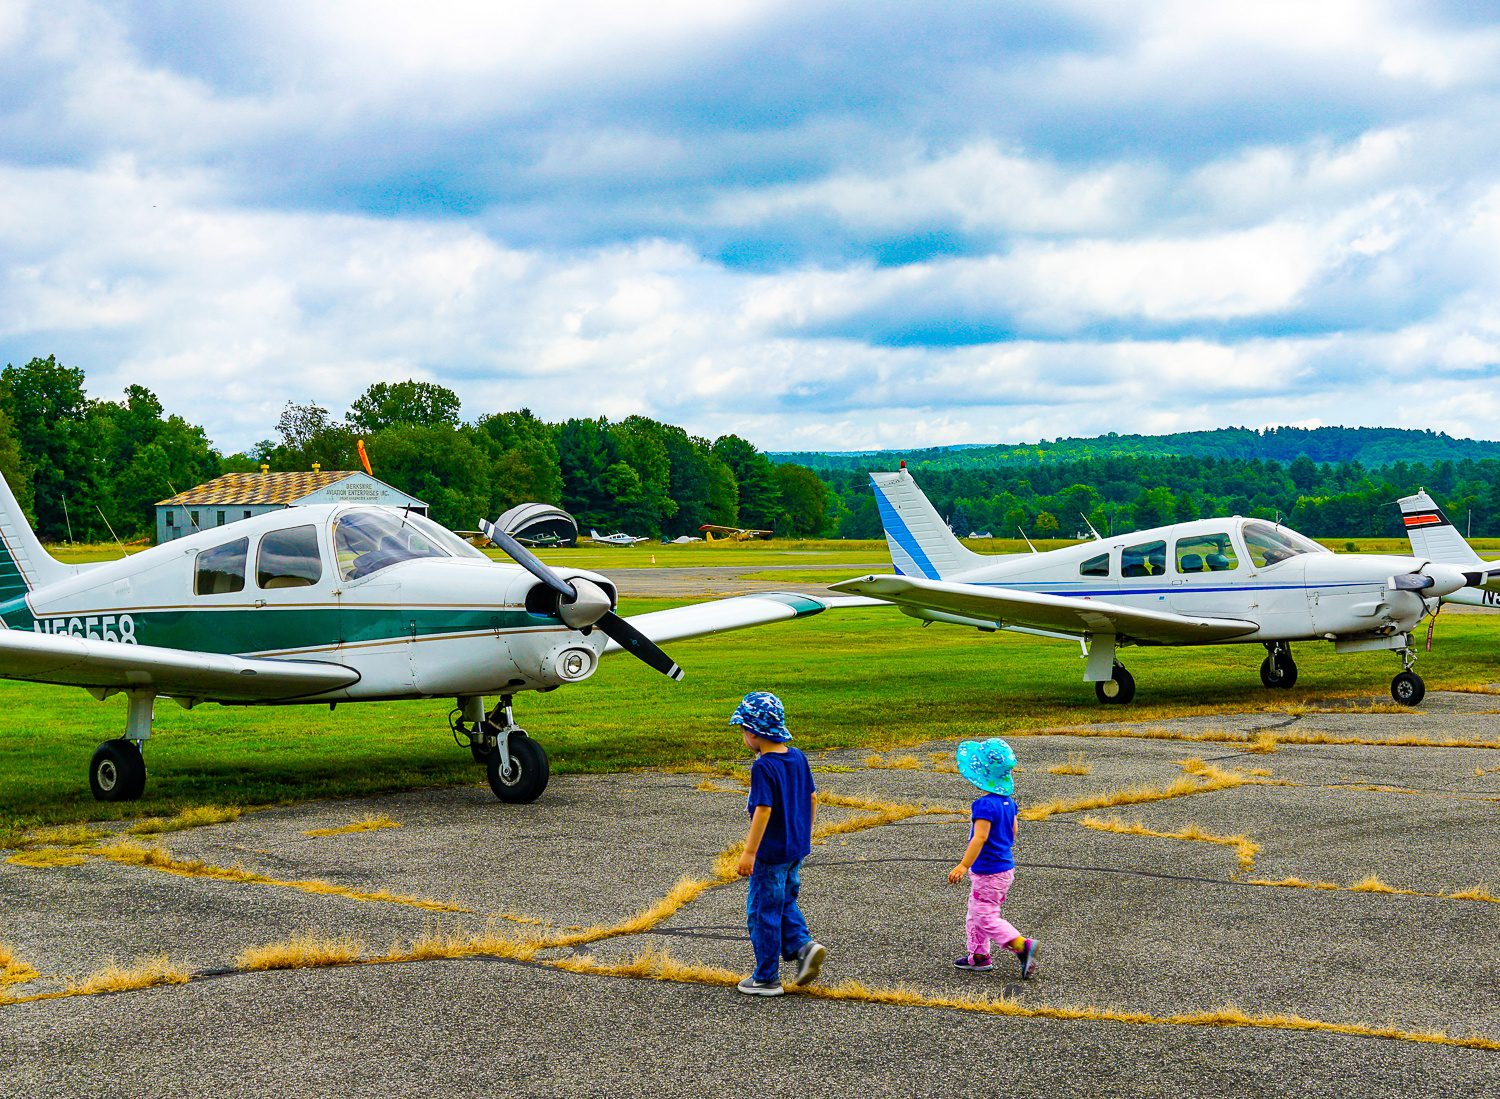 Kids can walk right up to the planes.